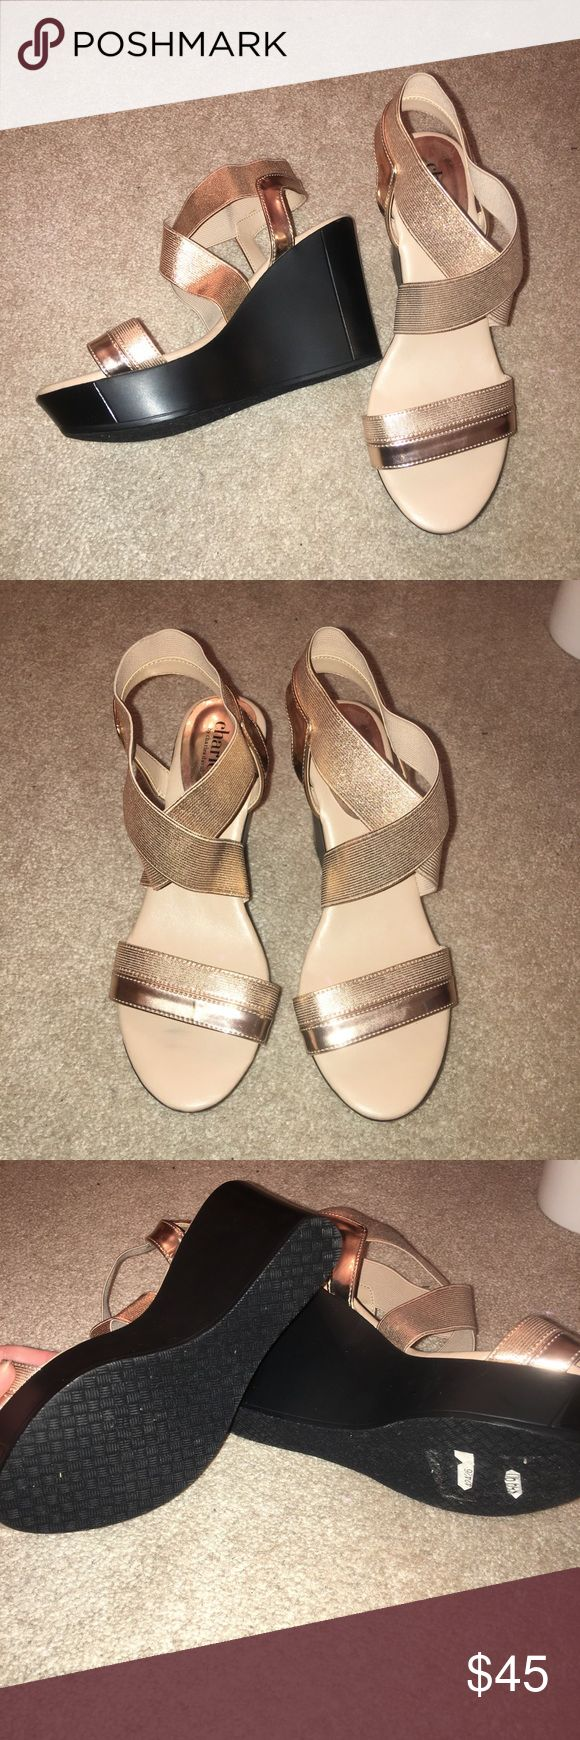 Charles David gold wedges worn once Charles David Shoes Wedges